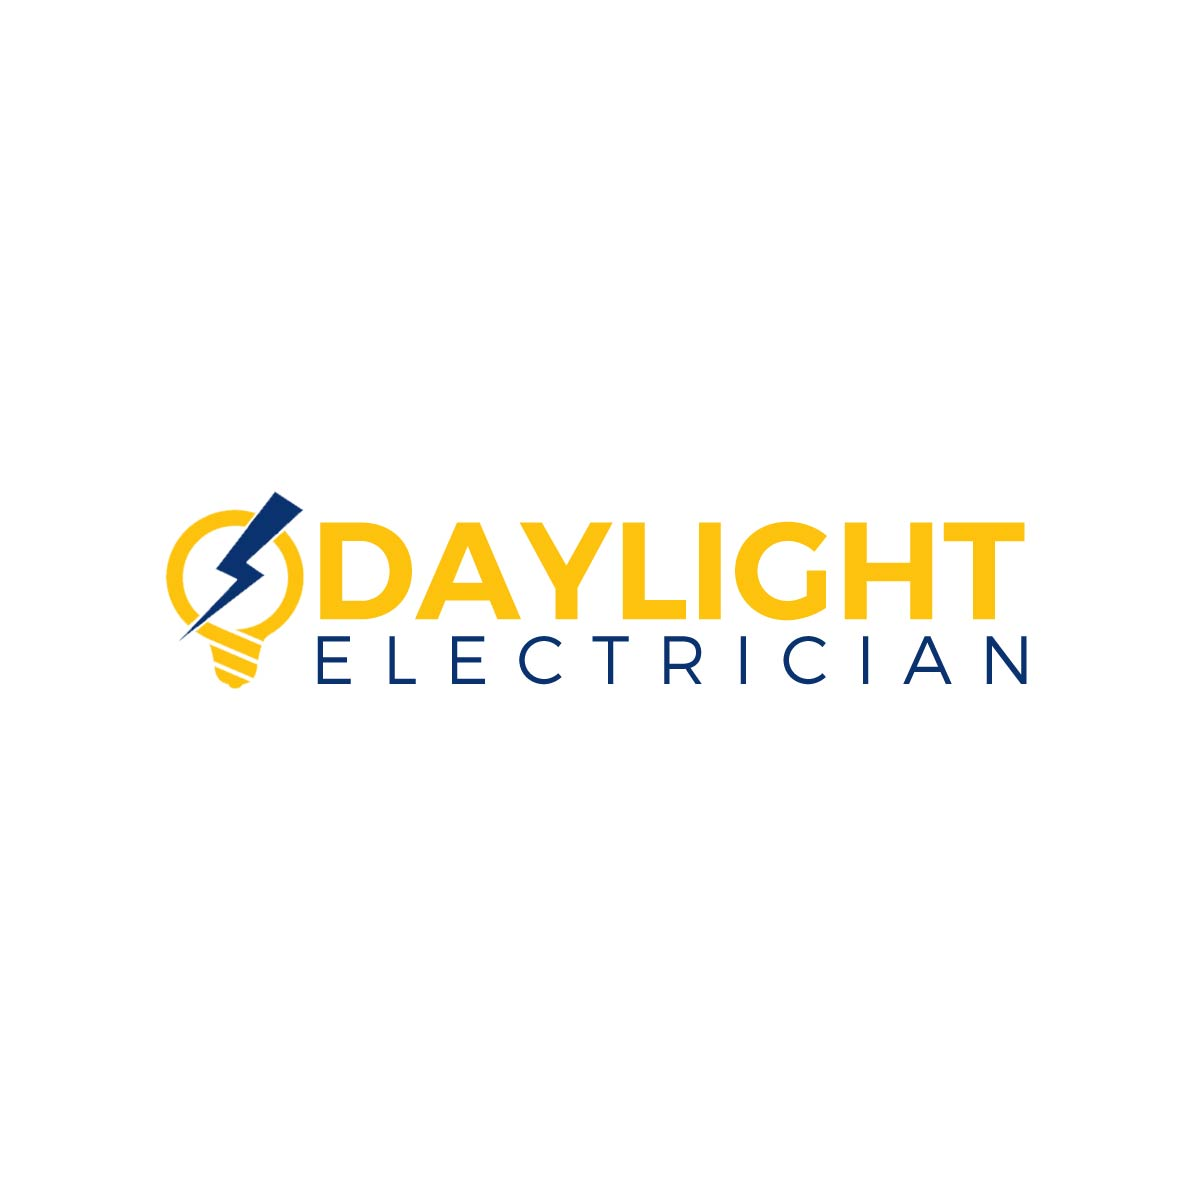 Singapore's Leading Electrical Service Provider Daylight Electrician Announces Brand Unification With Everyworks